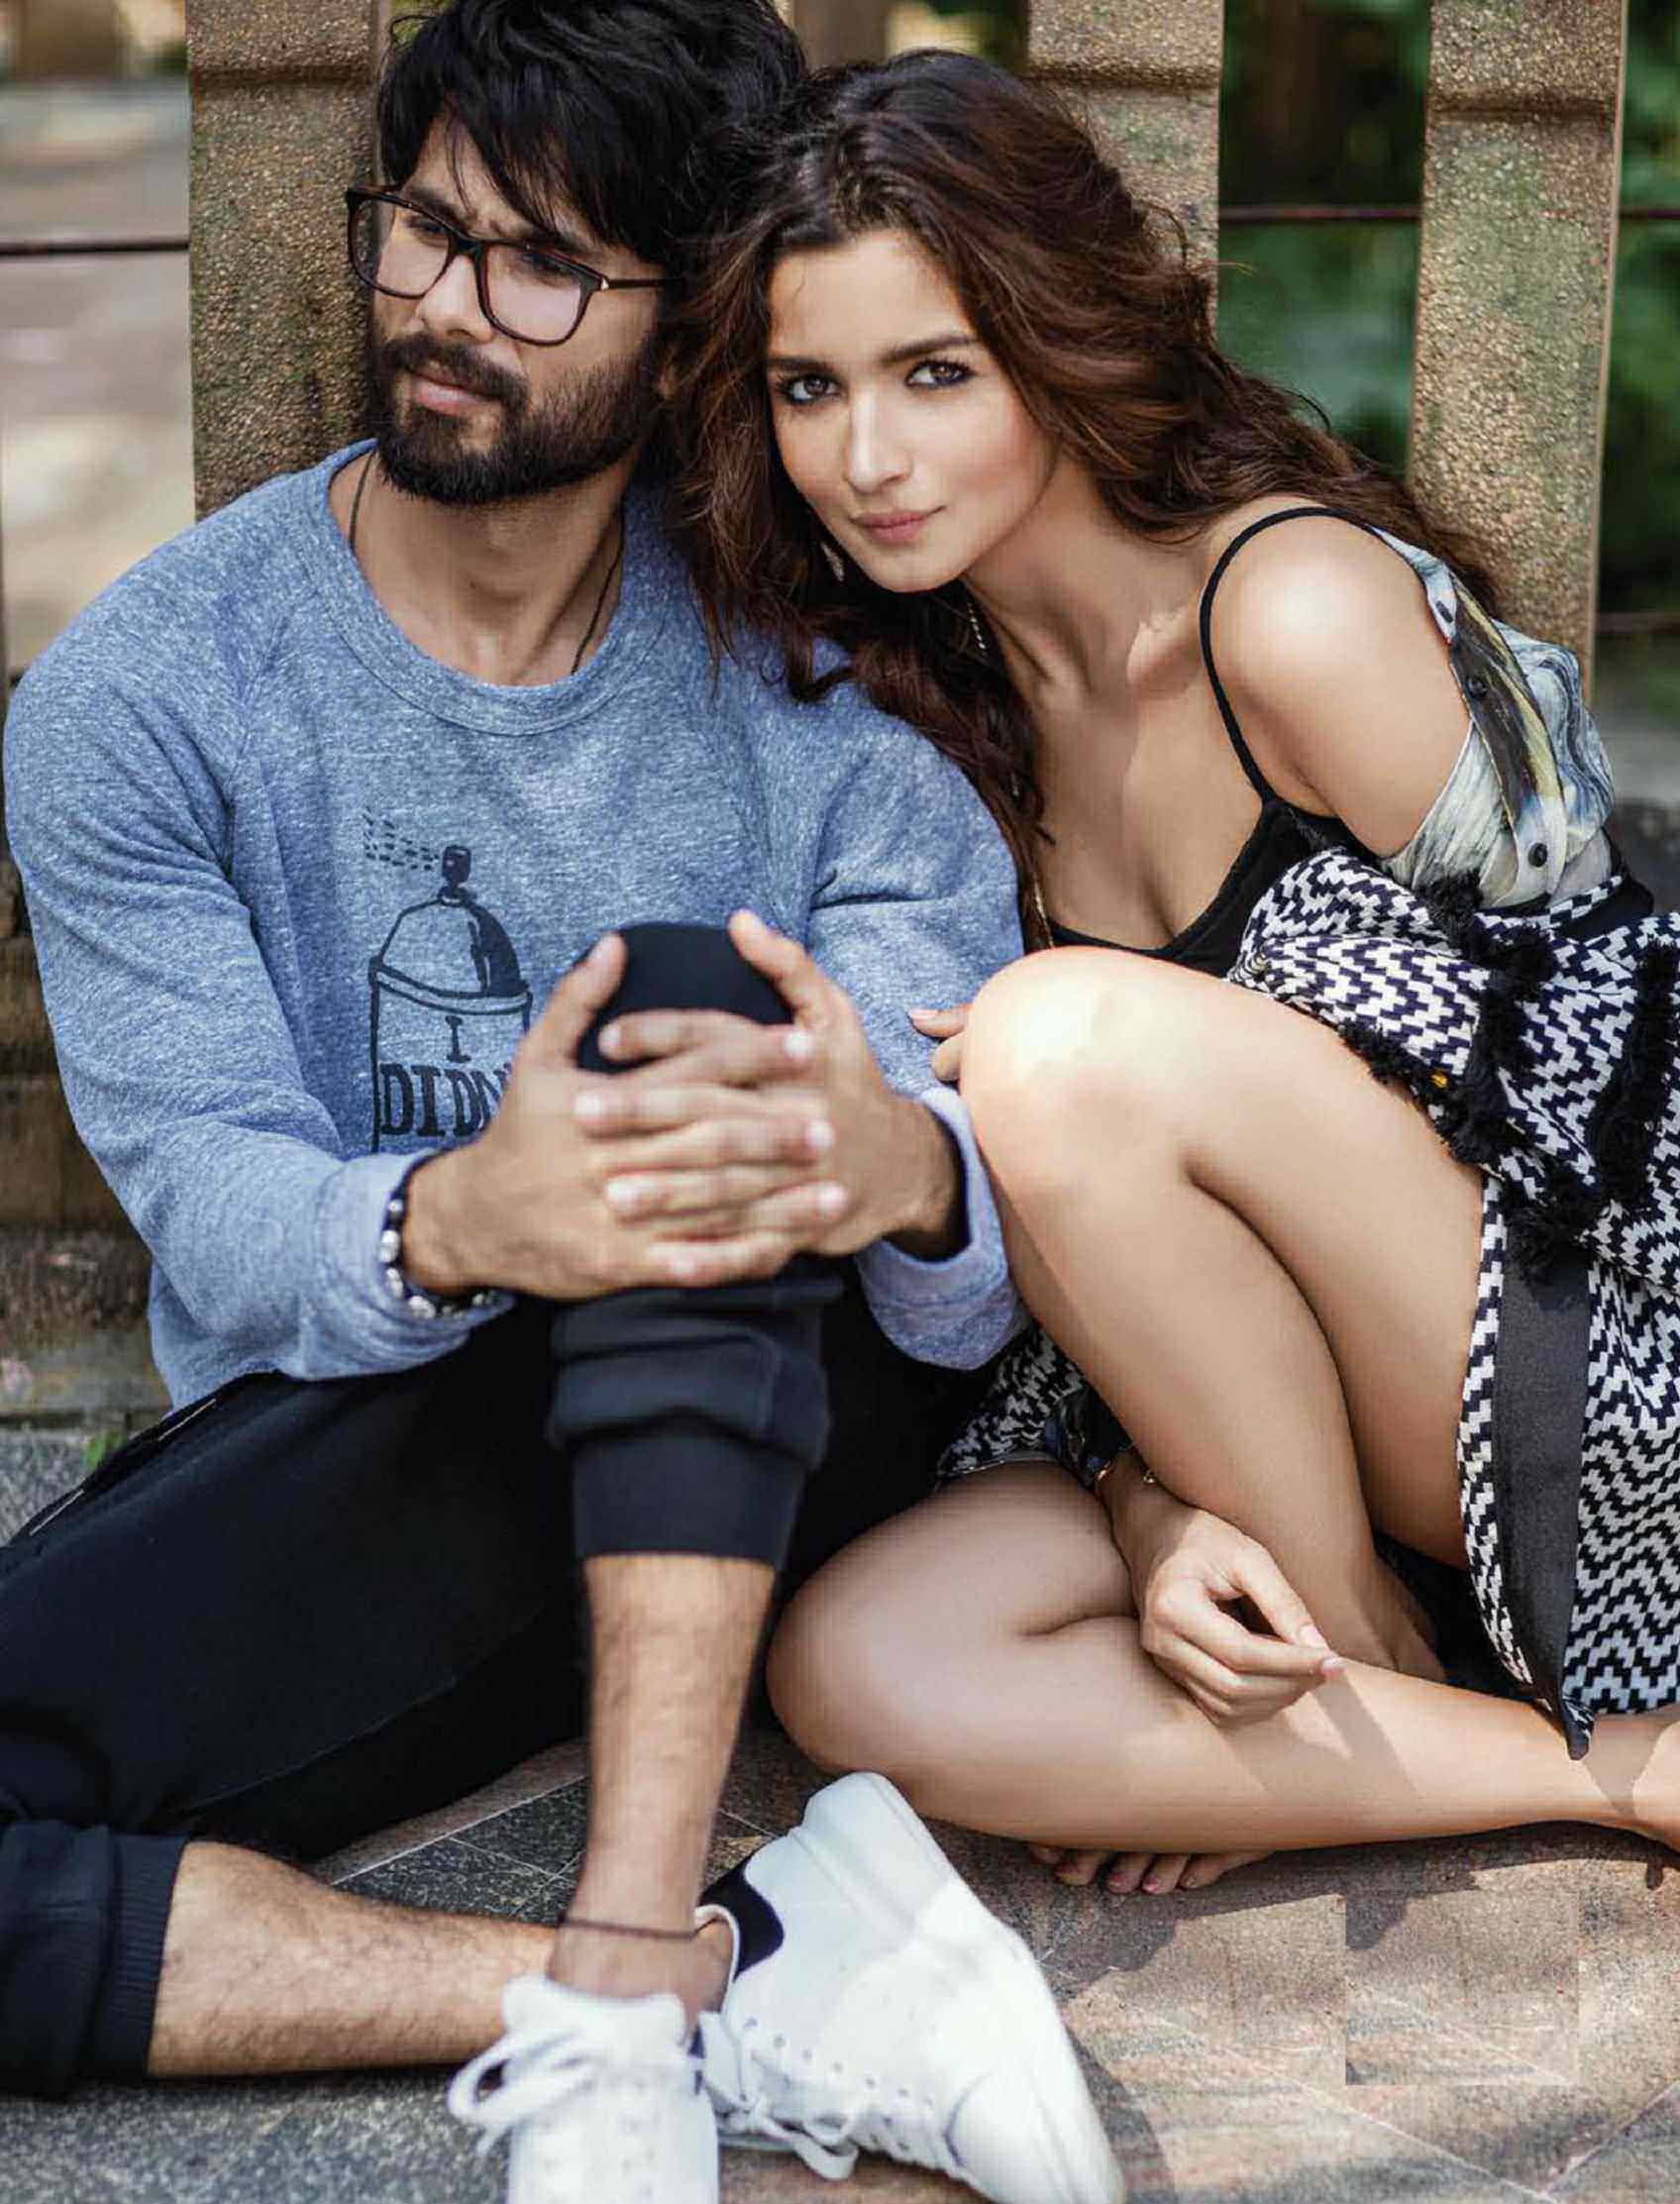 I like the grain from which Alia is made. Real and extremely emotional, both as an artiste and as a person. As a person, her journey is about finding herself. There is a genuine need in her to discover more about life - Shahid